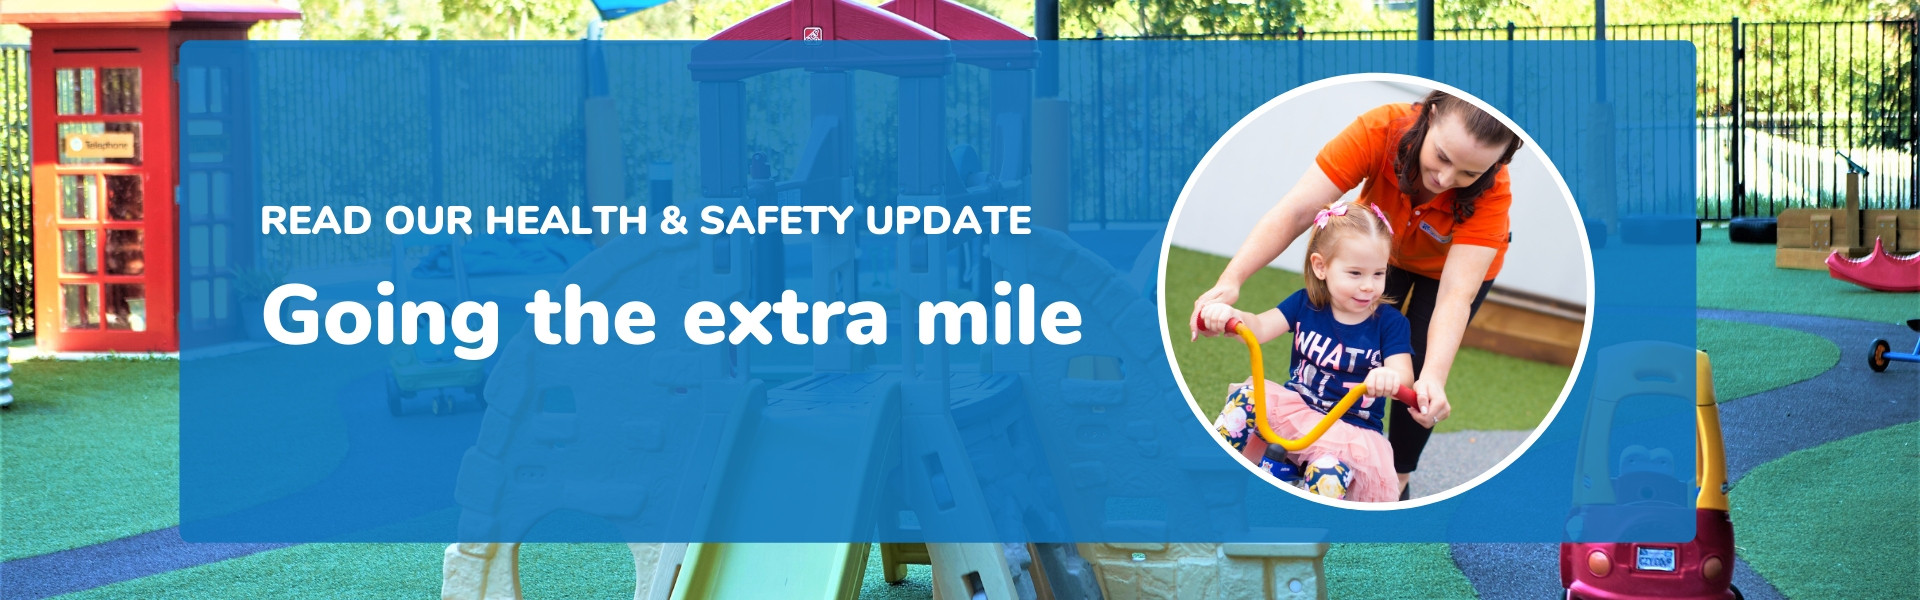 Oz  Education childcare health safety policy update